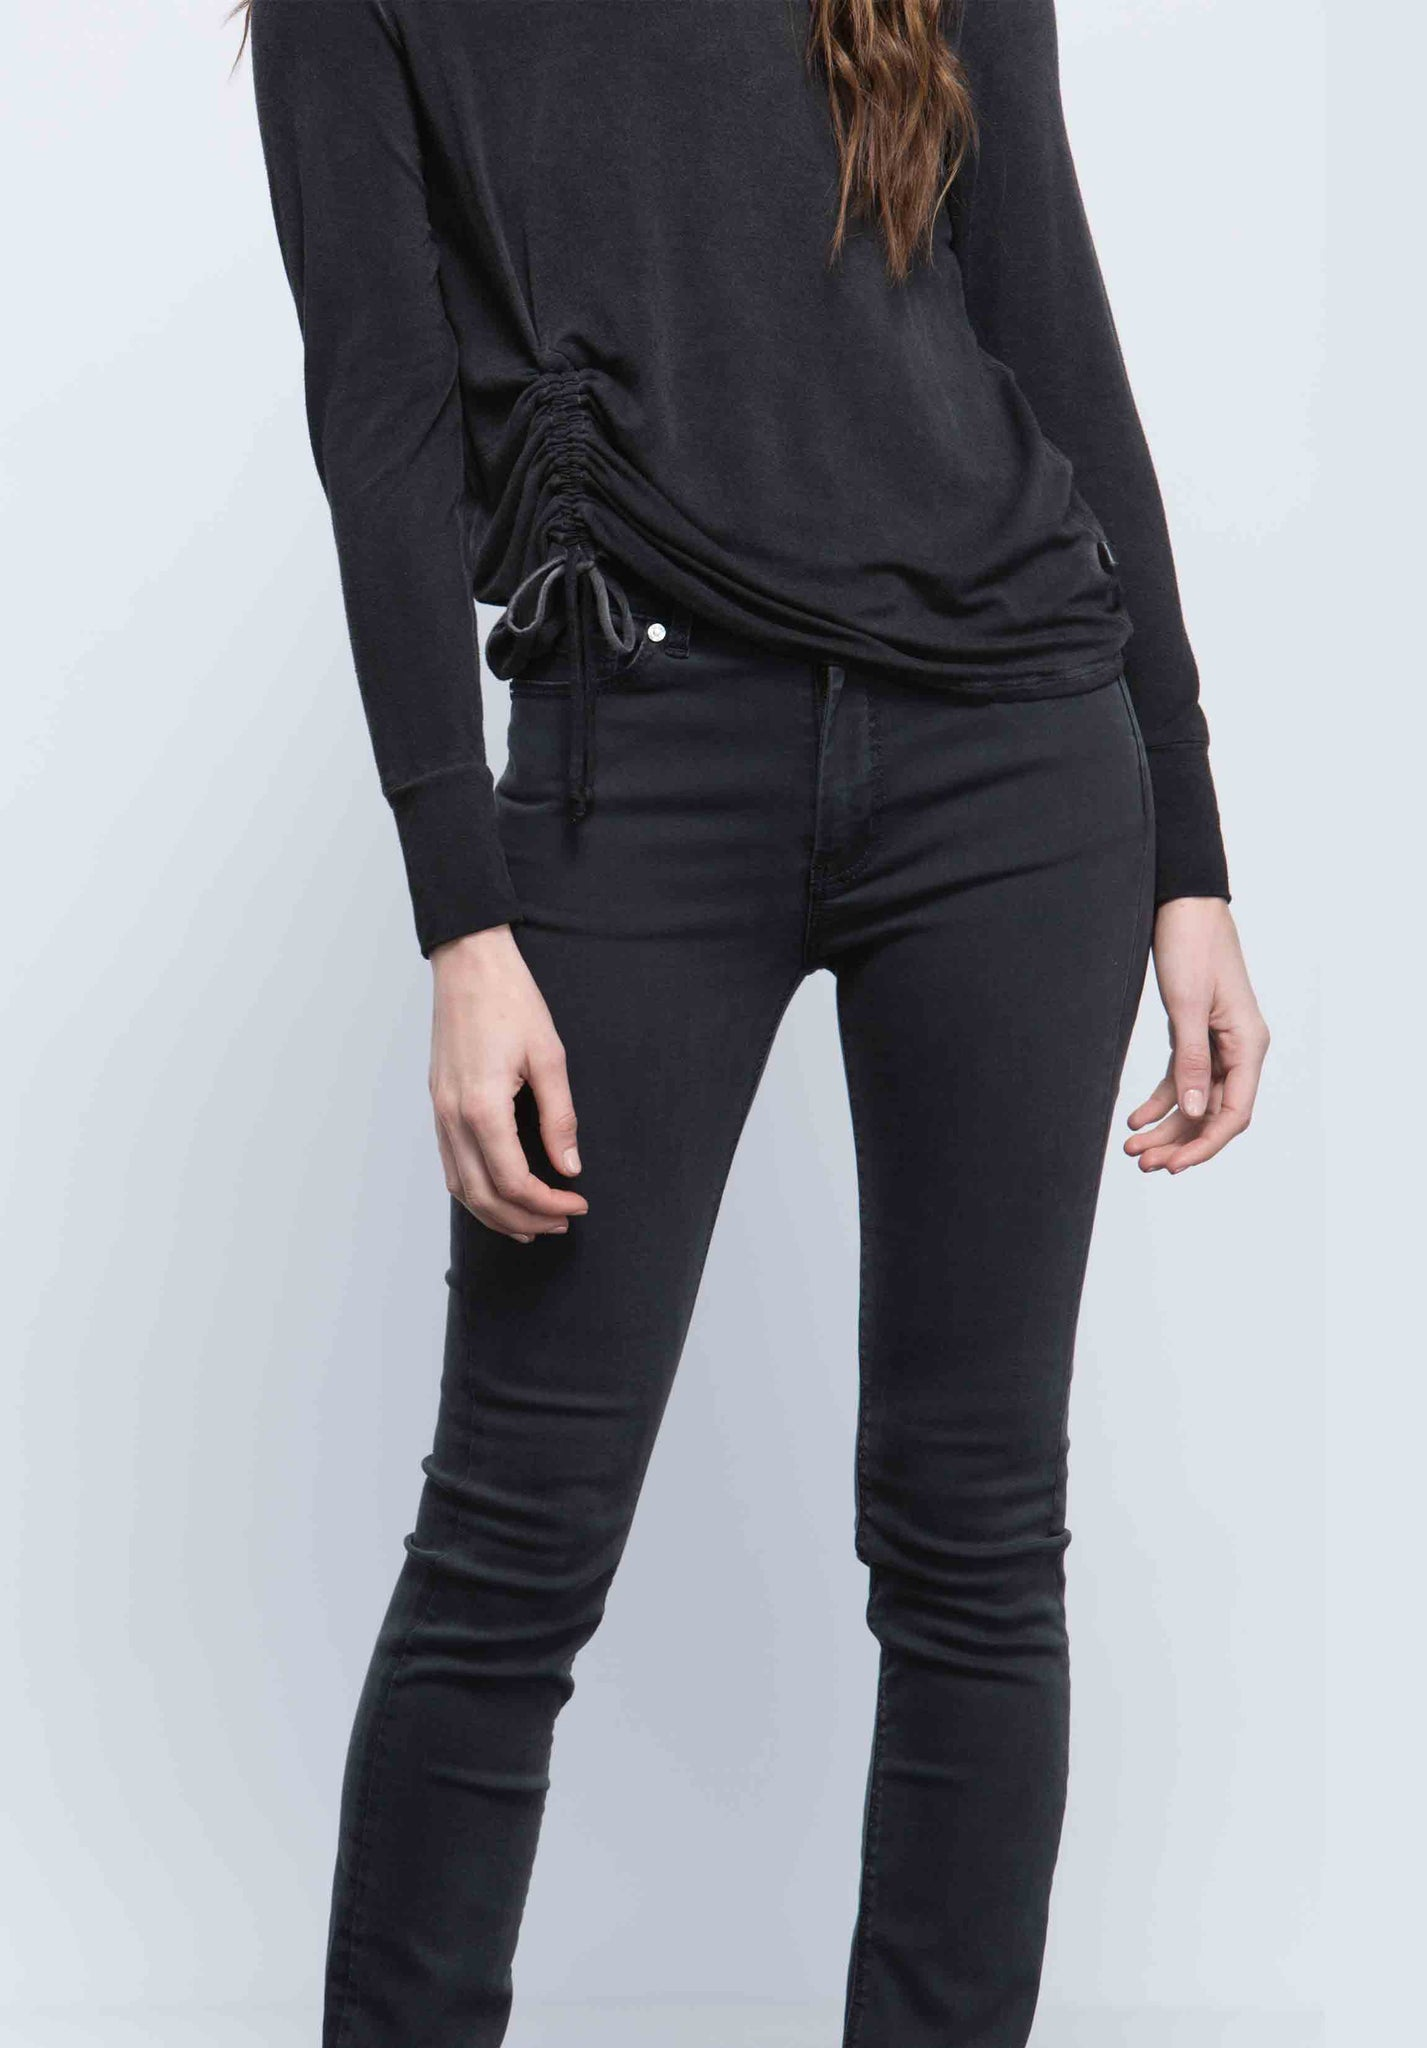 SAWYER RUCHED TIE TOP |  OIL WASH BLACK